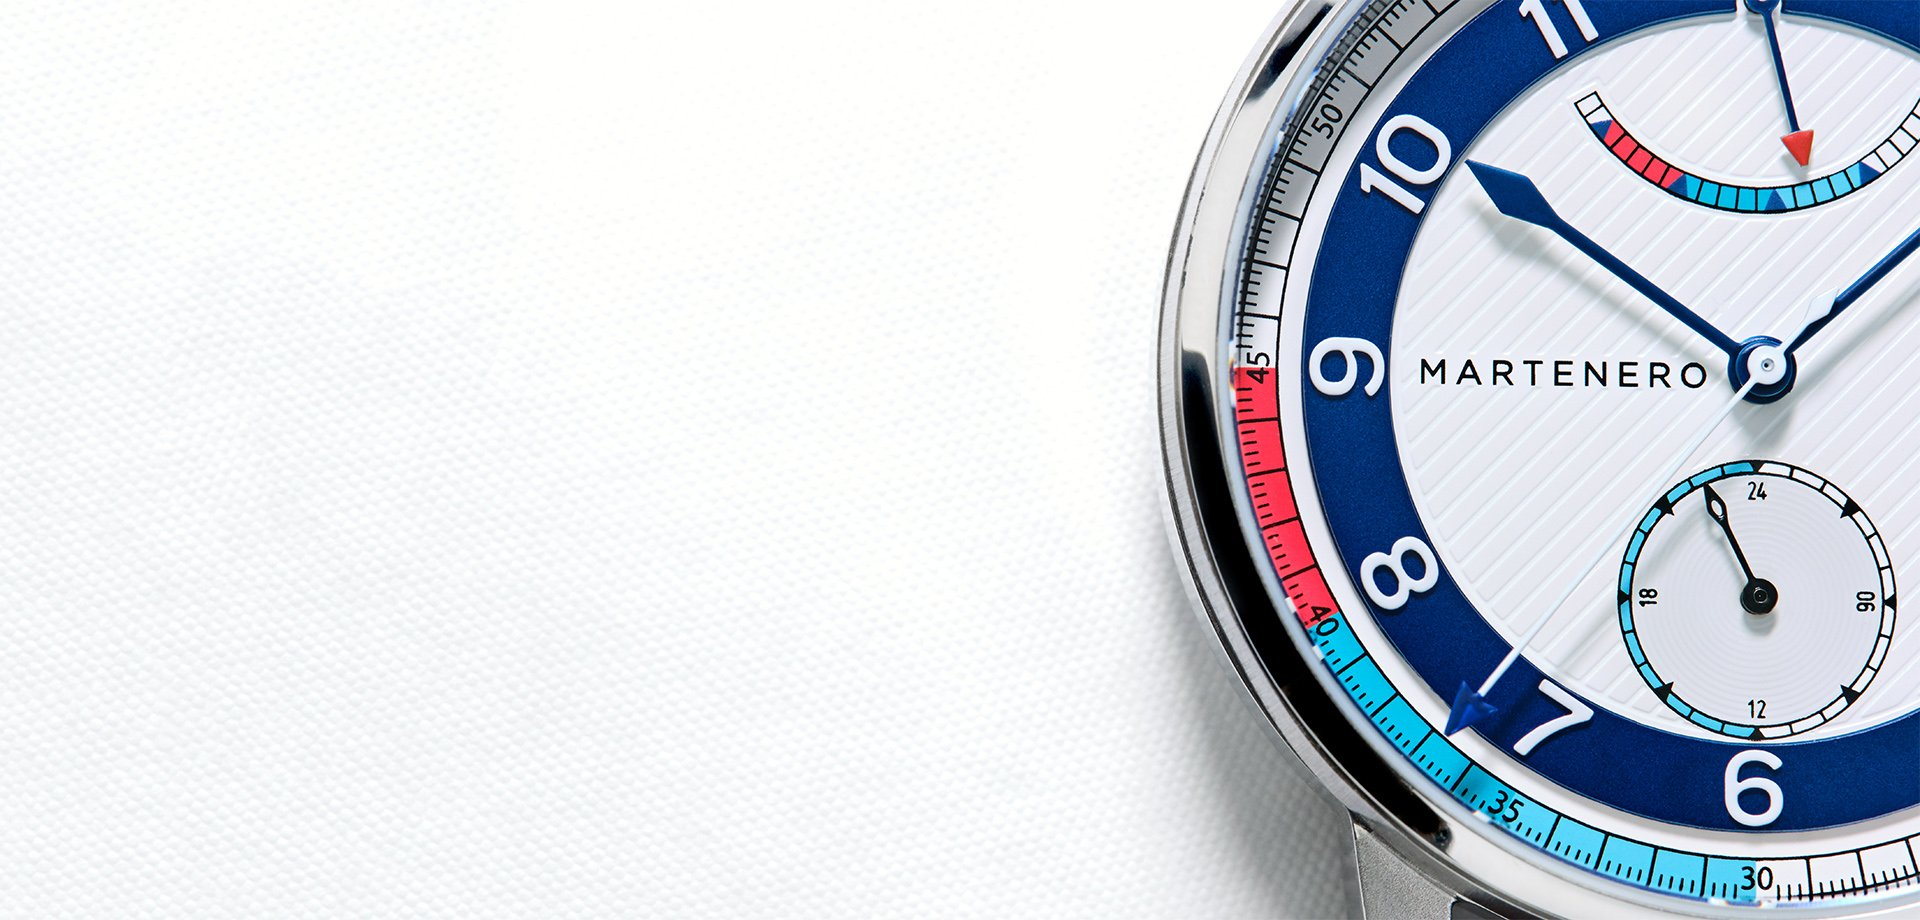 A nautical-themed watch in a variety of bold colorways